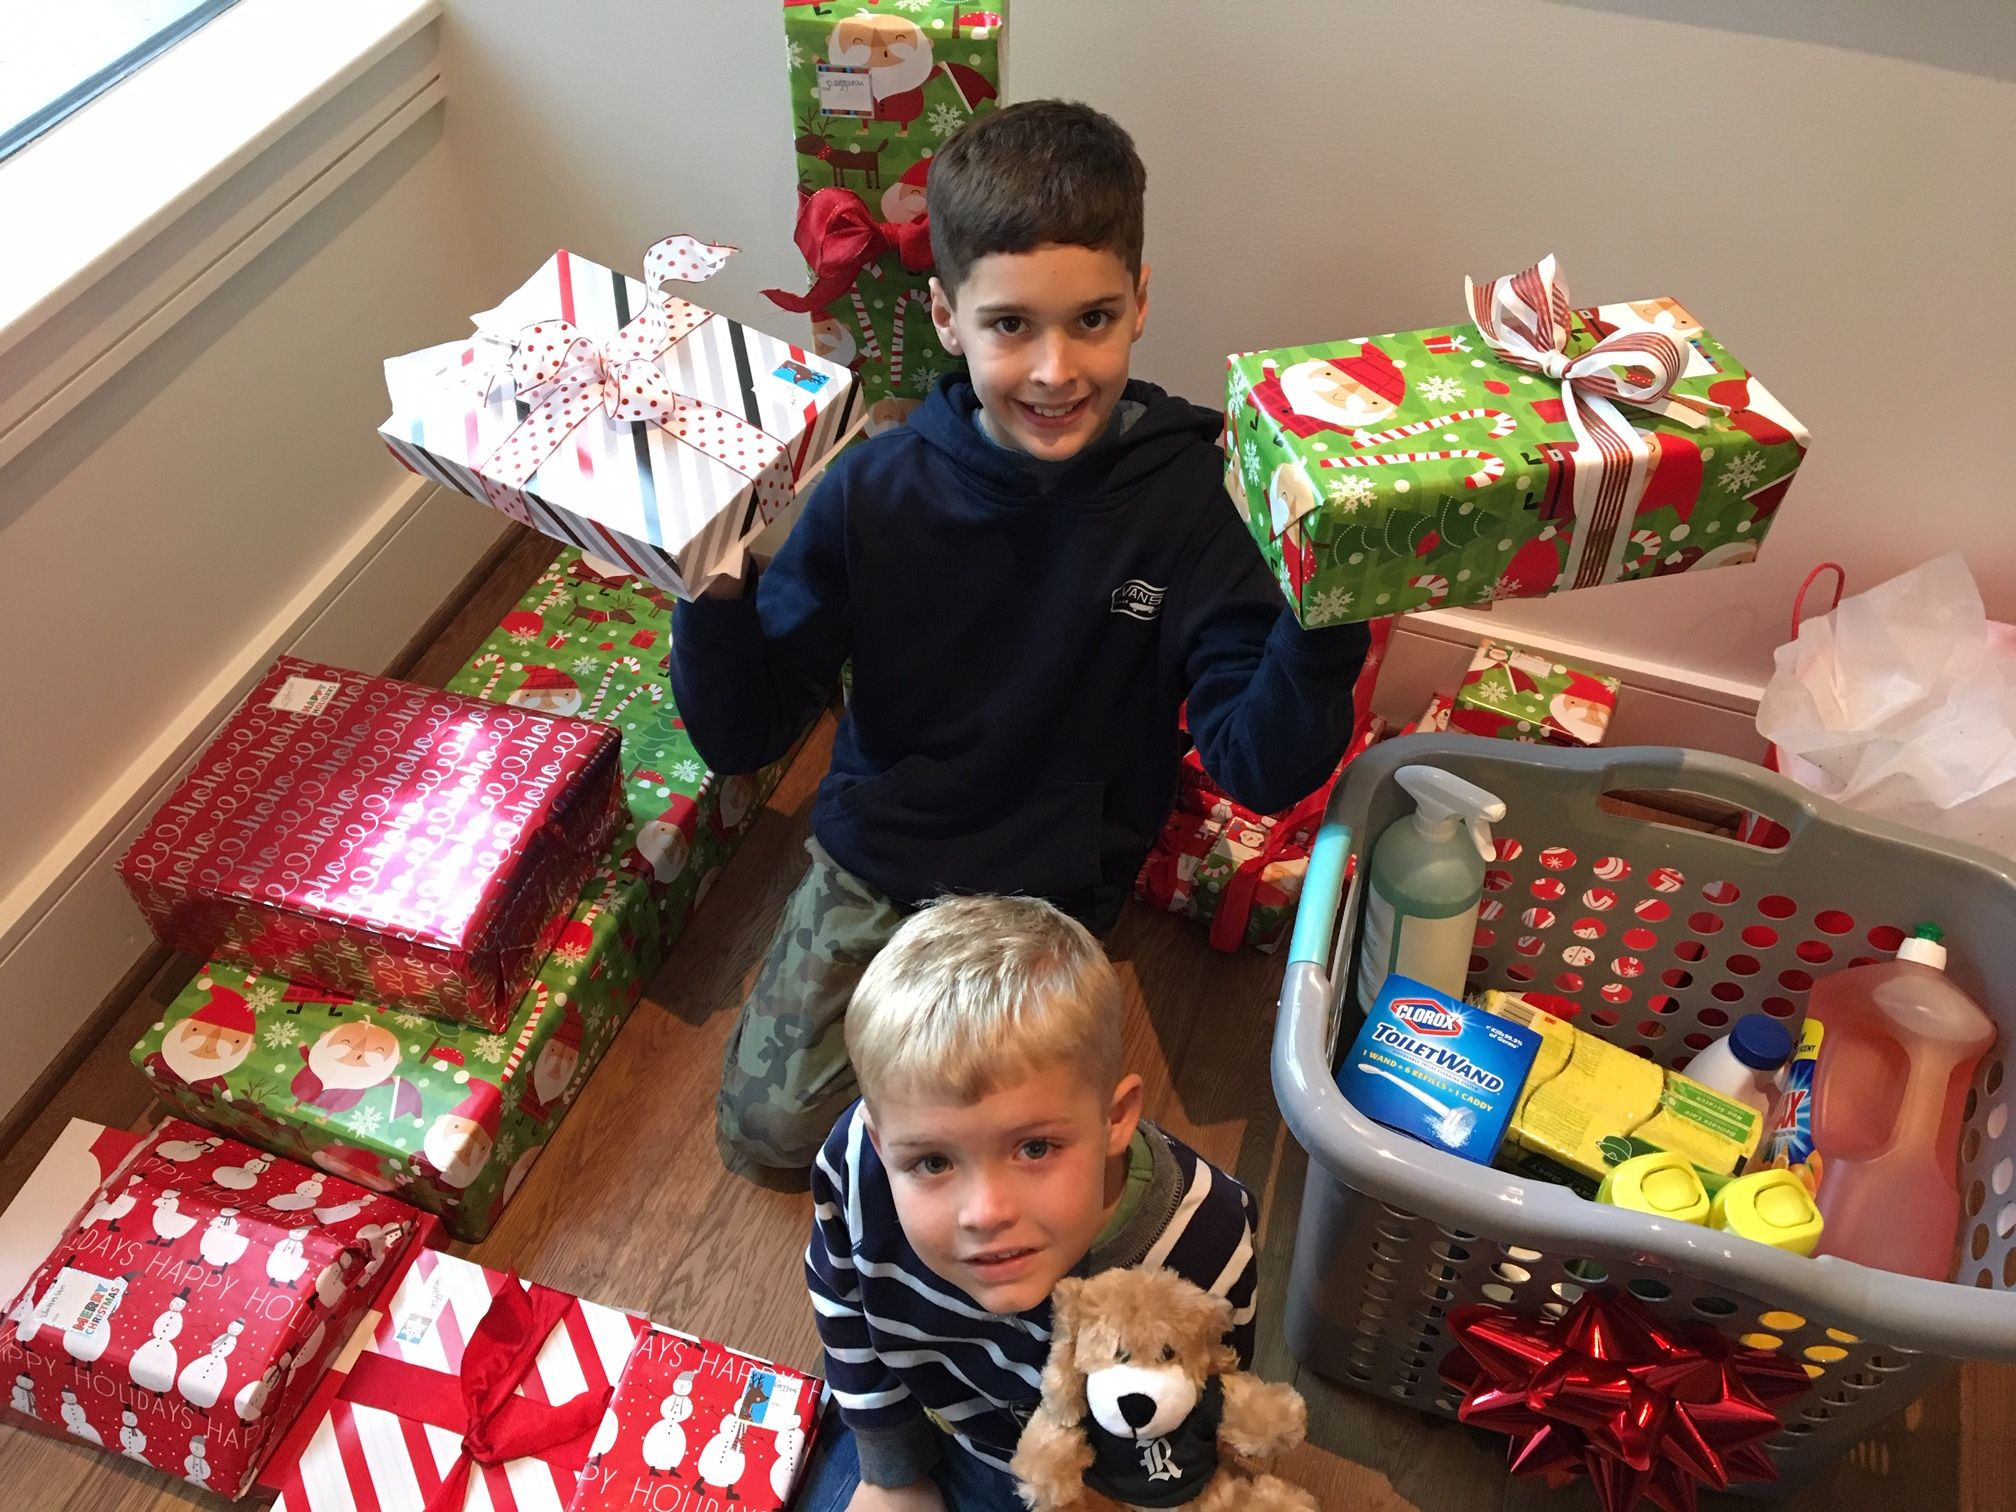 Two children sit on the floor among several wrapped presents.